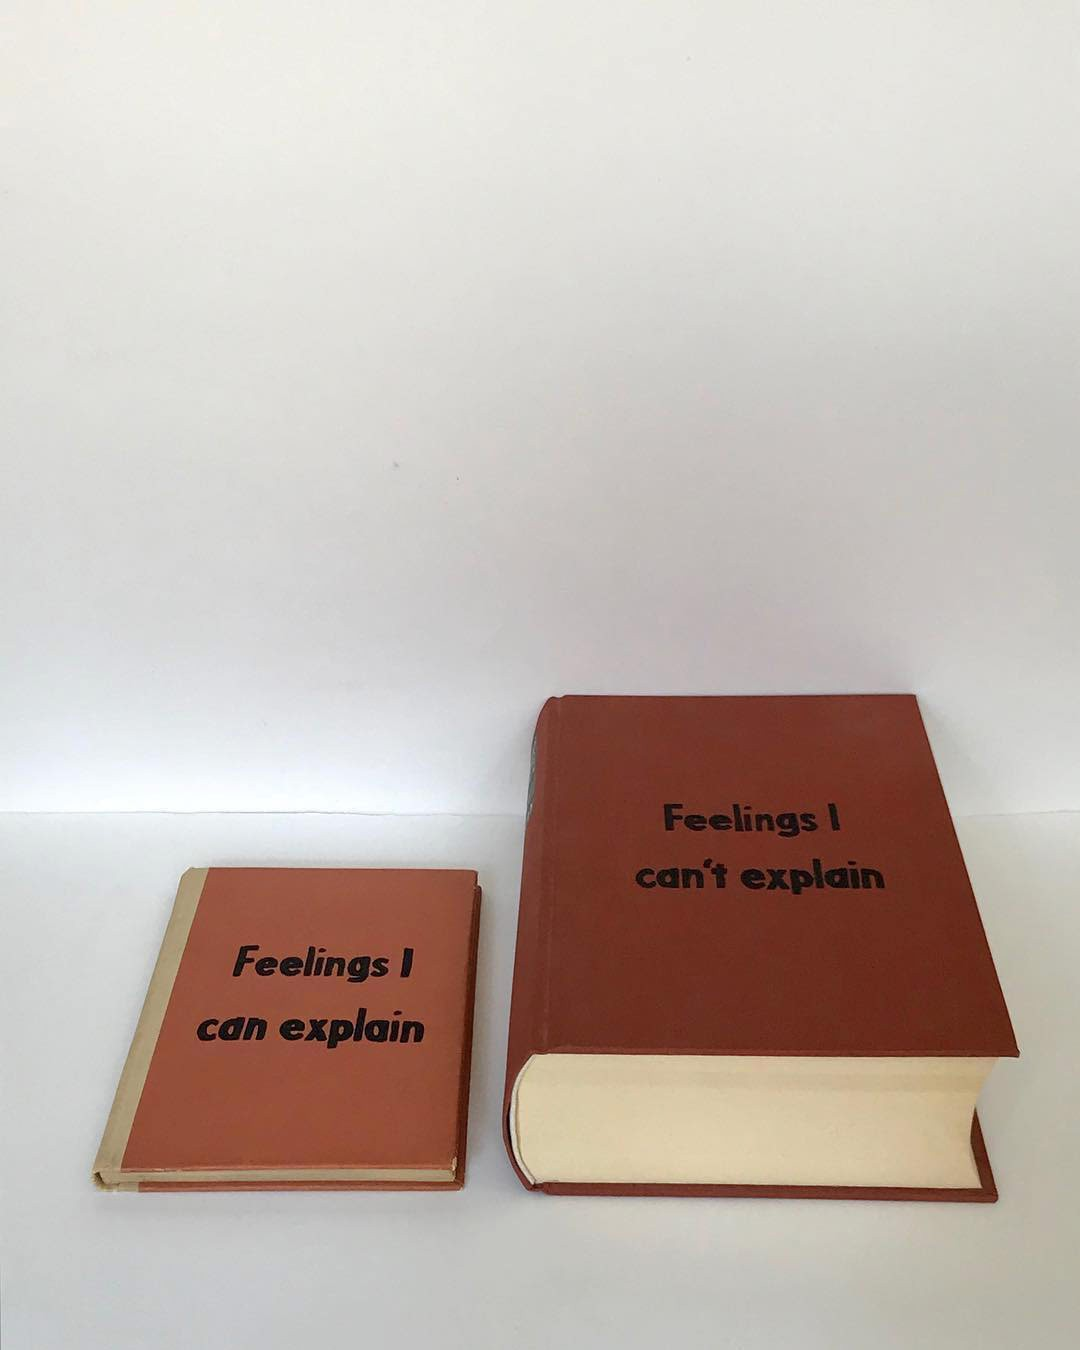 New Fictional Self-Help Titles Present Existential Messages on Faded Book Covers